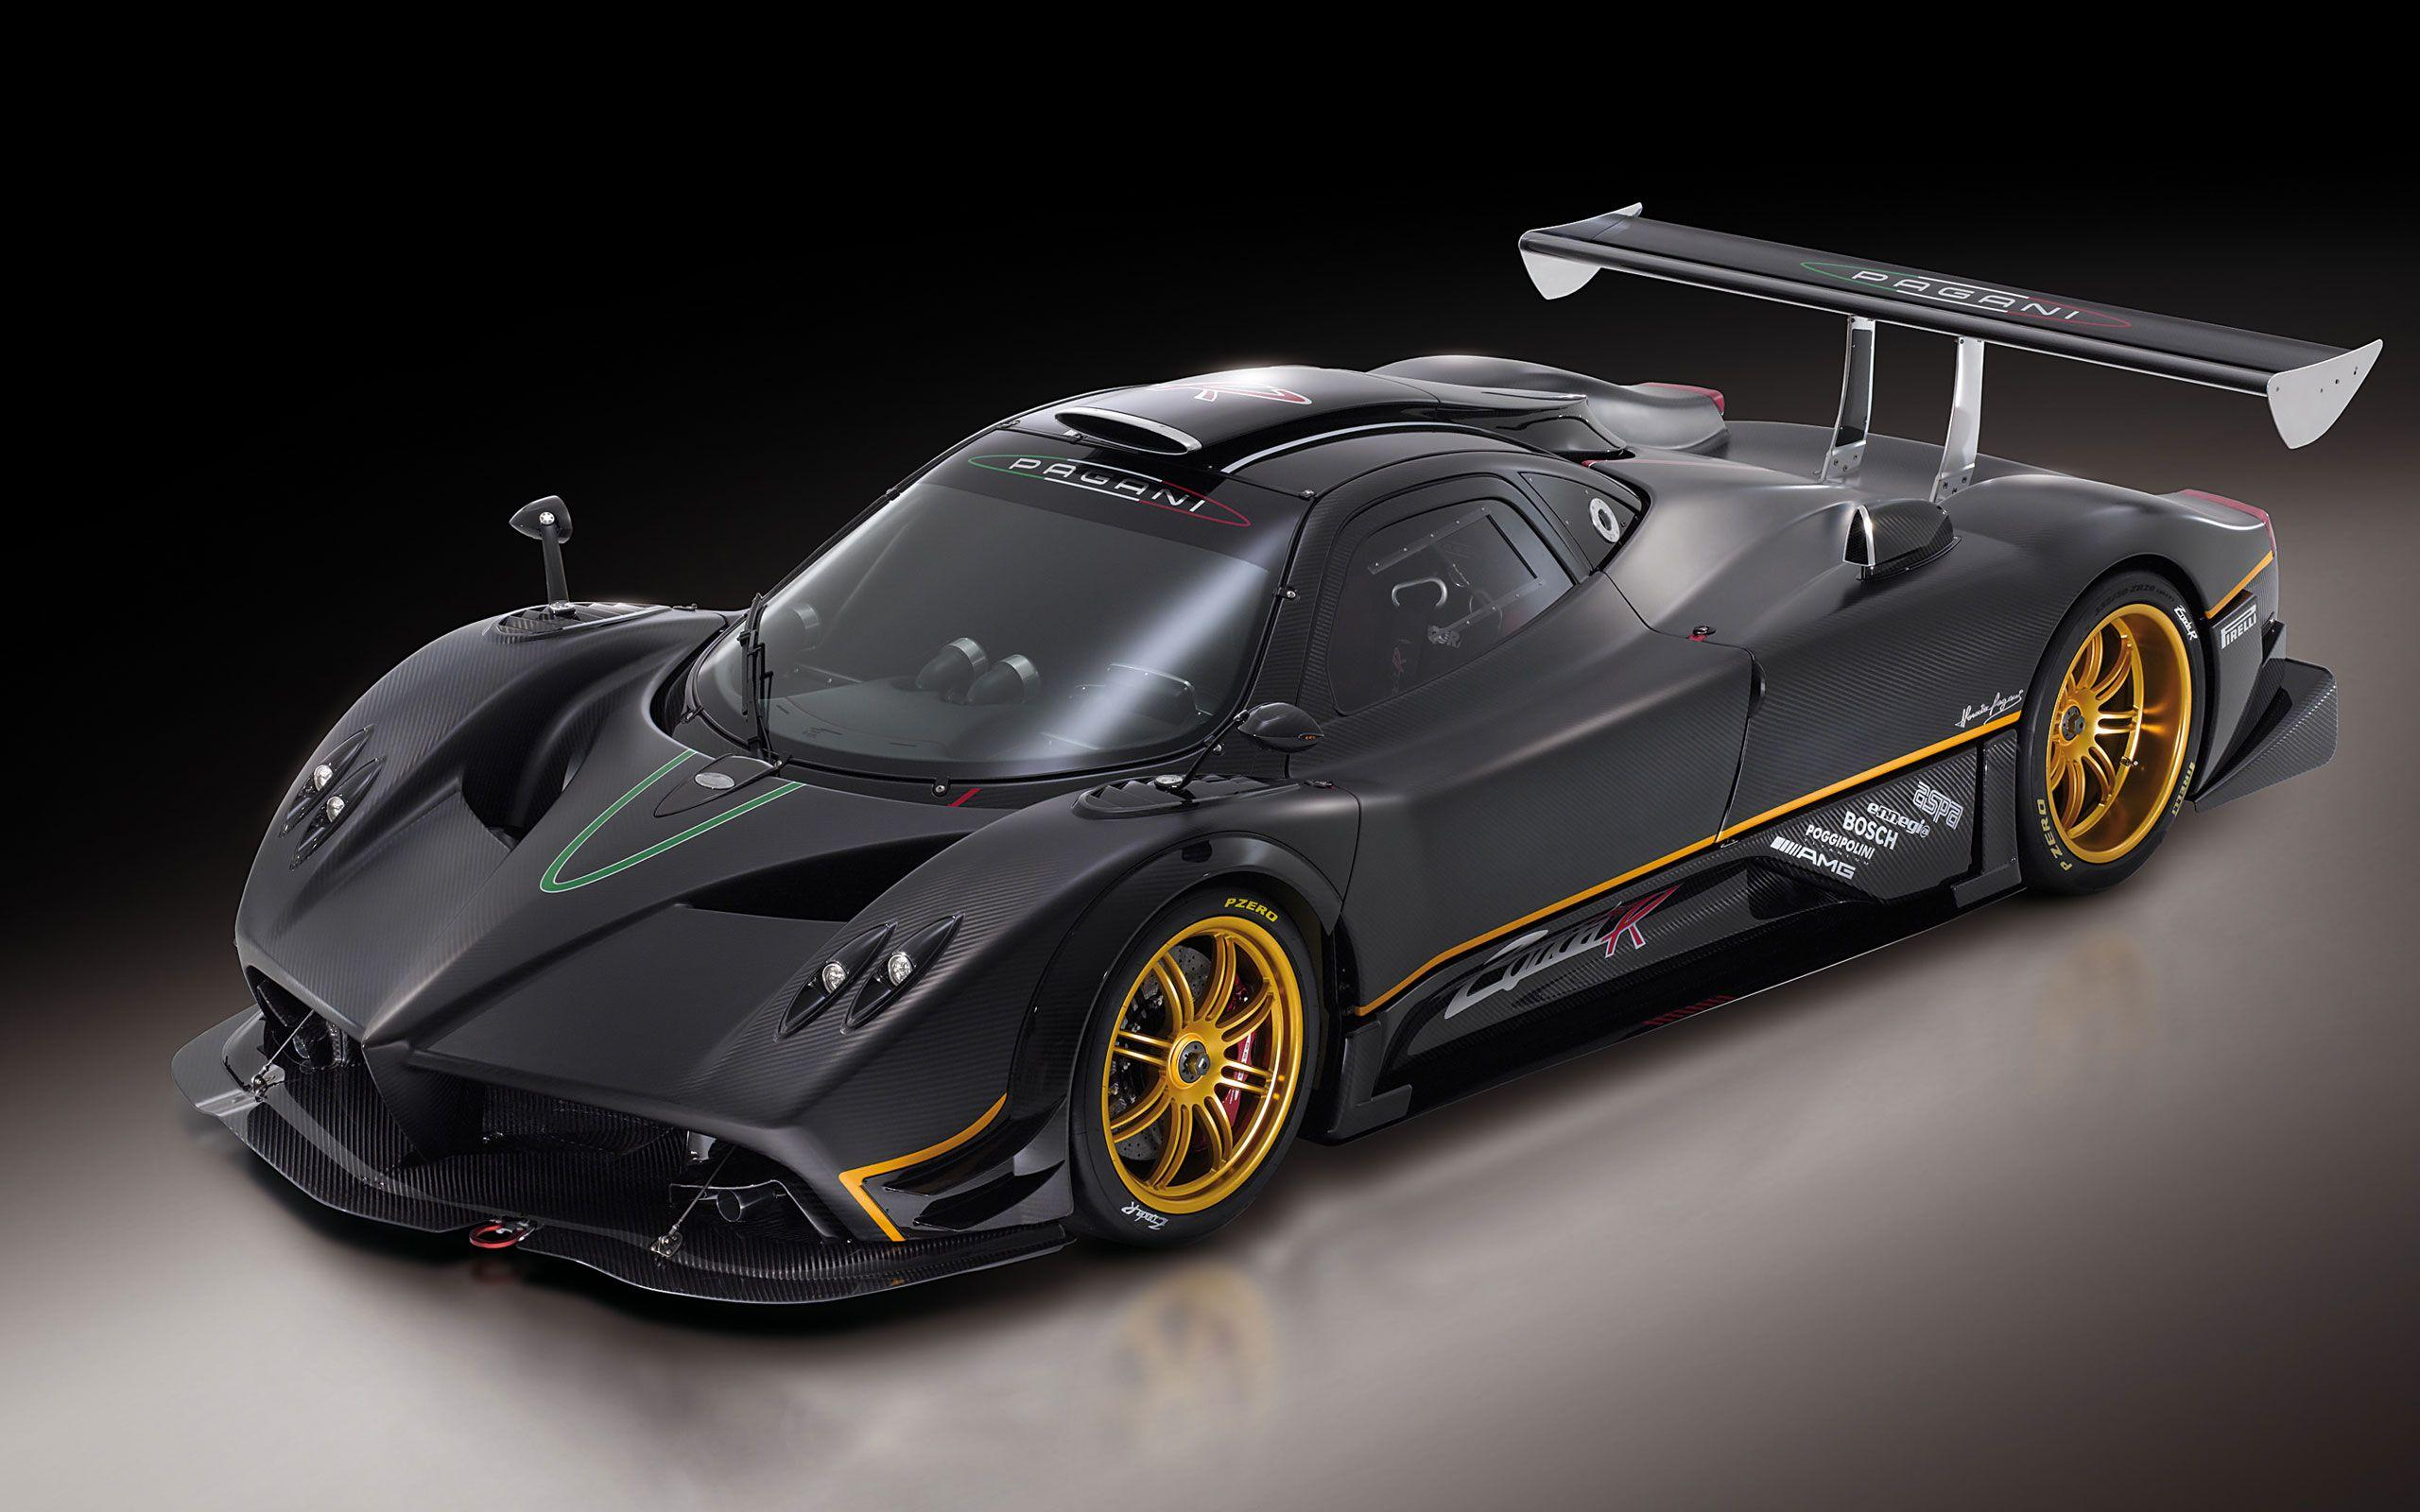 Superieur Pagani Zonda R Wallpaper | HD Car Wallpapers